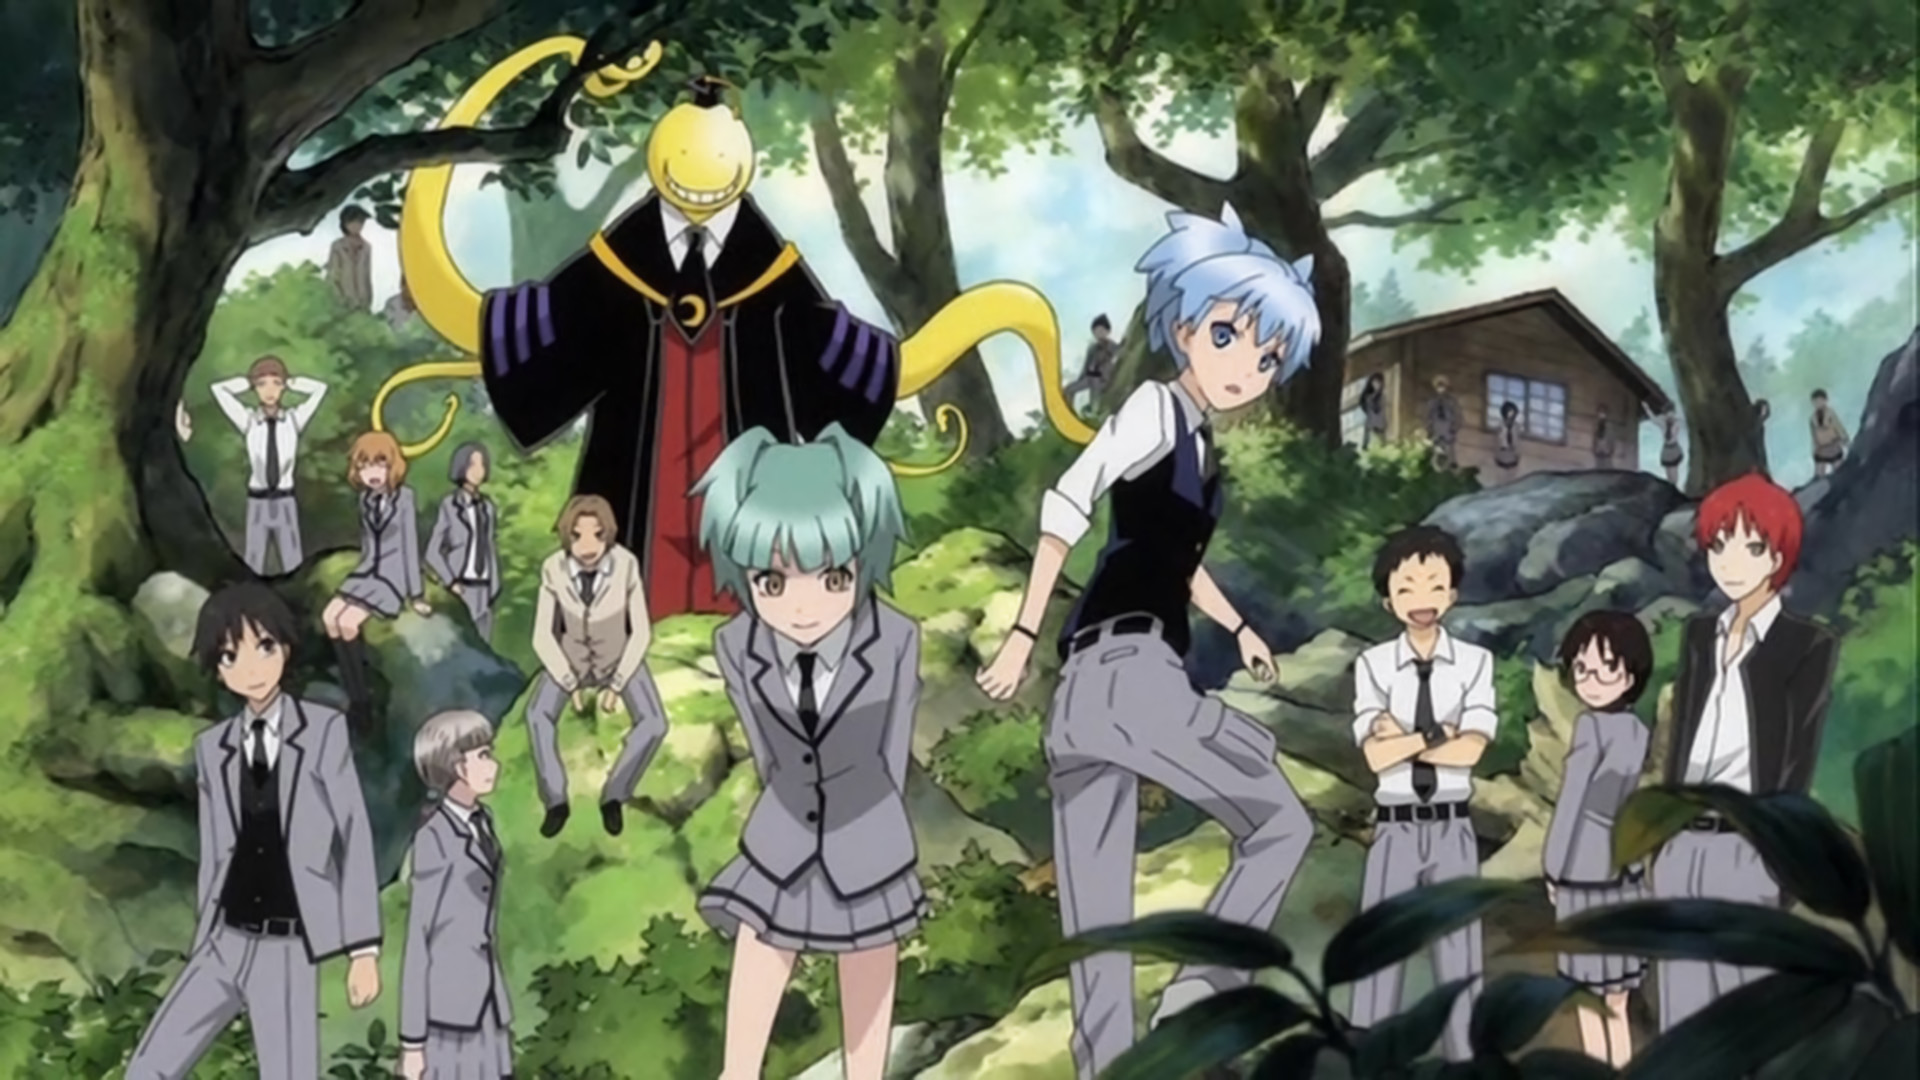 1920x1080 Assassination Classroom Koro-sensei · HD Wallpaper | Background ID:505747